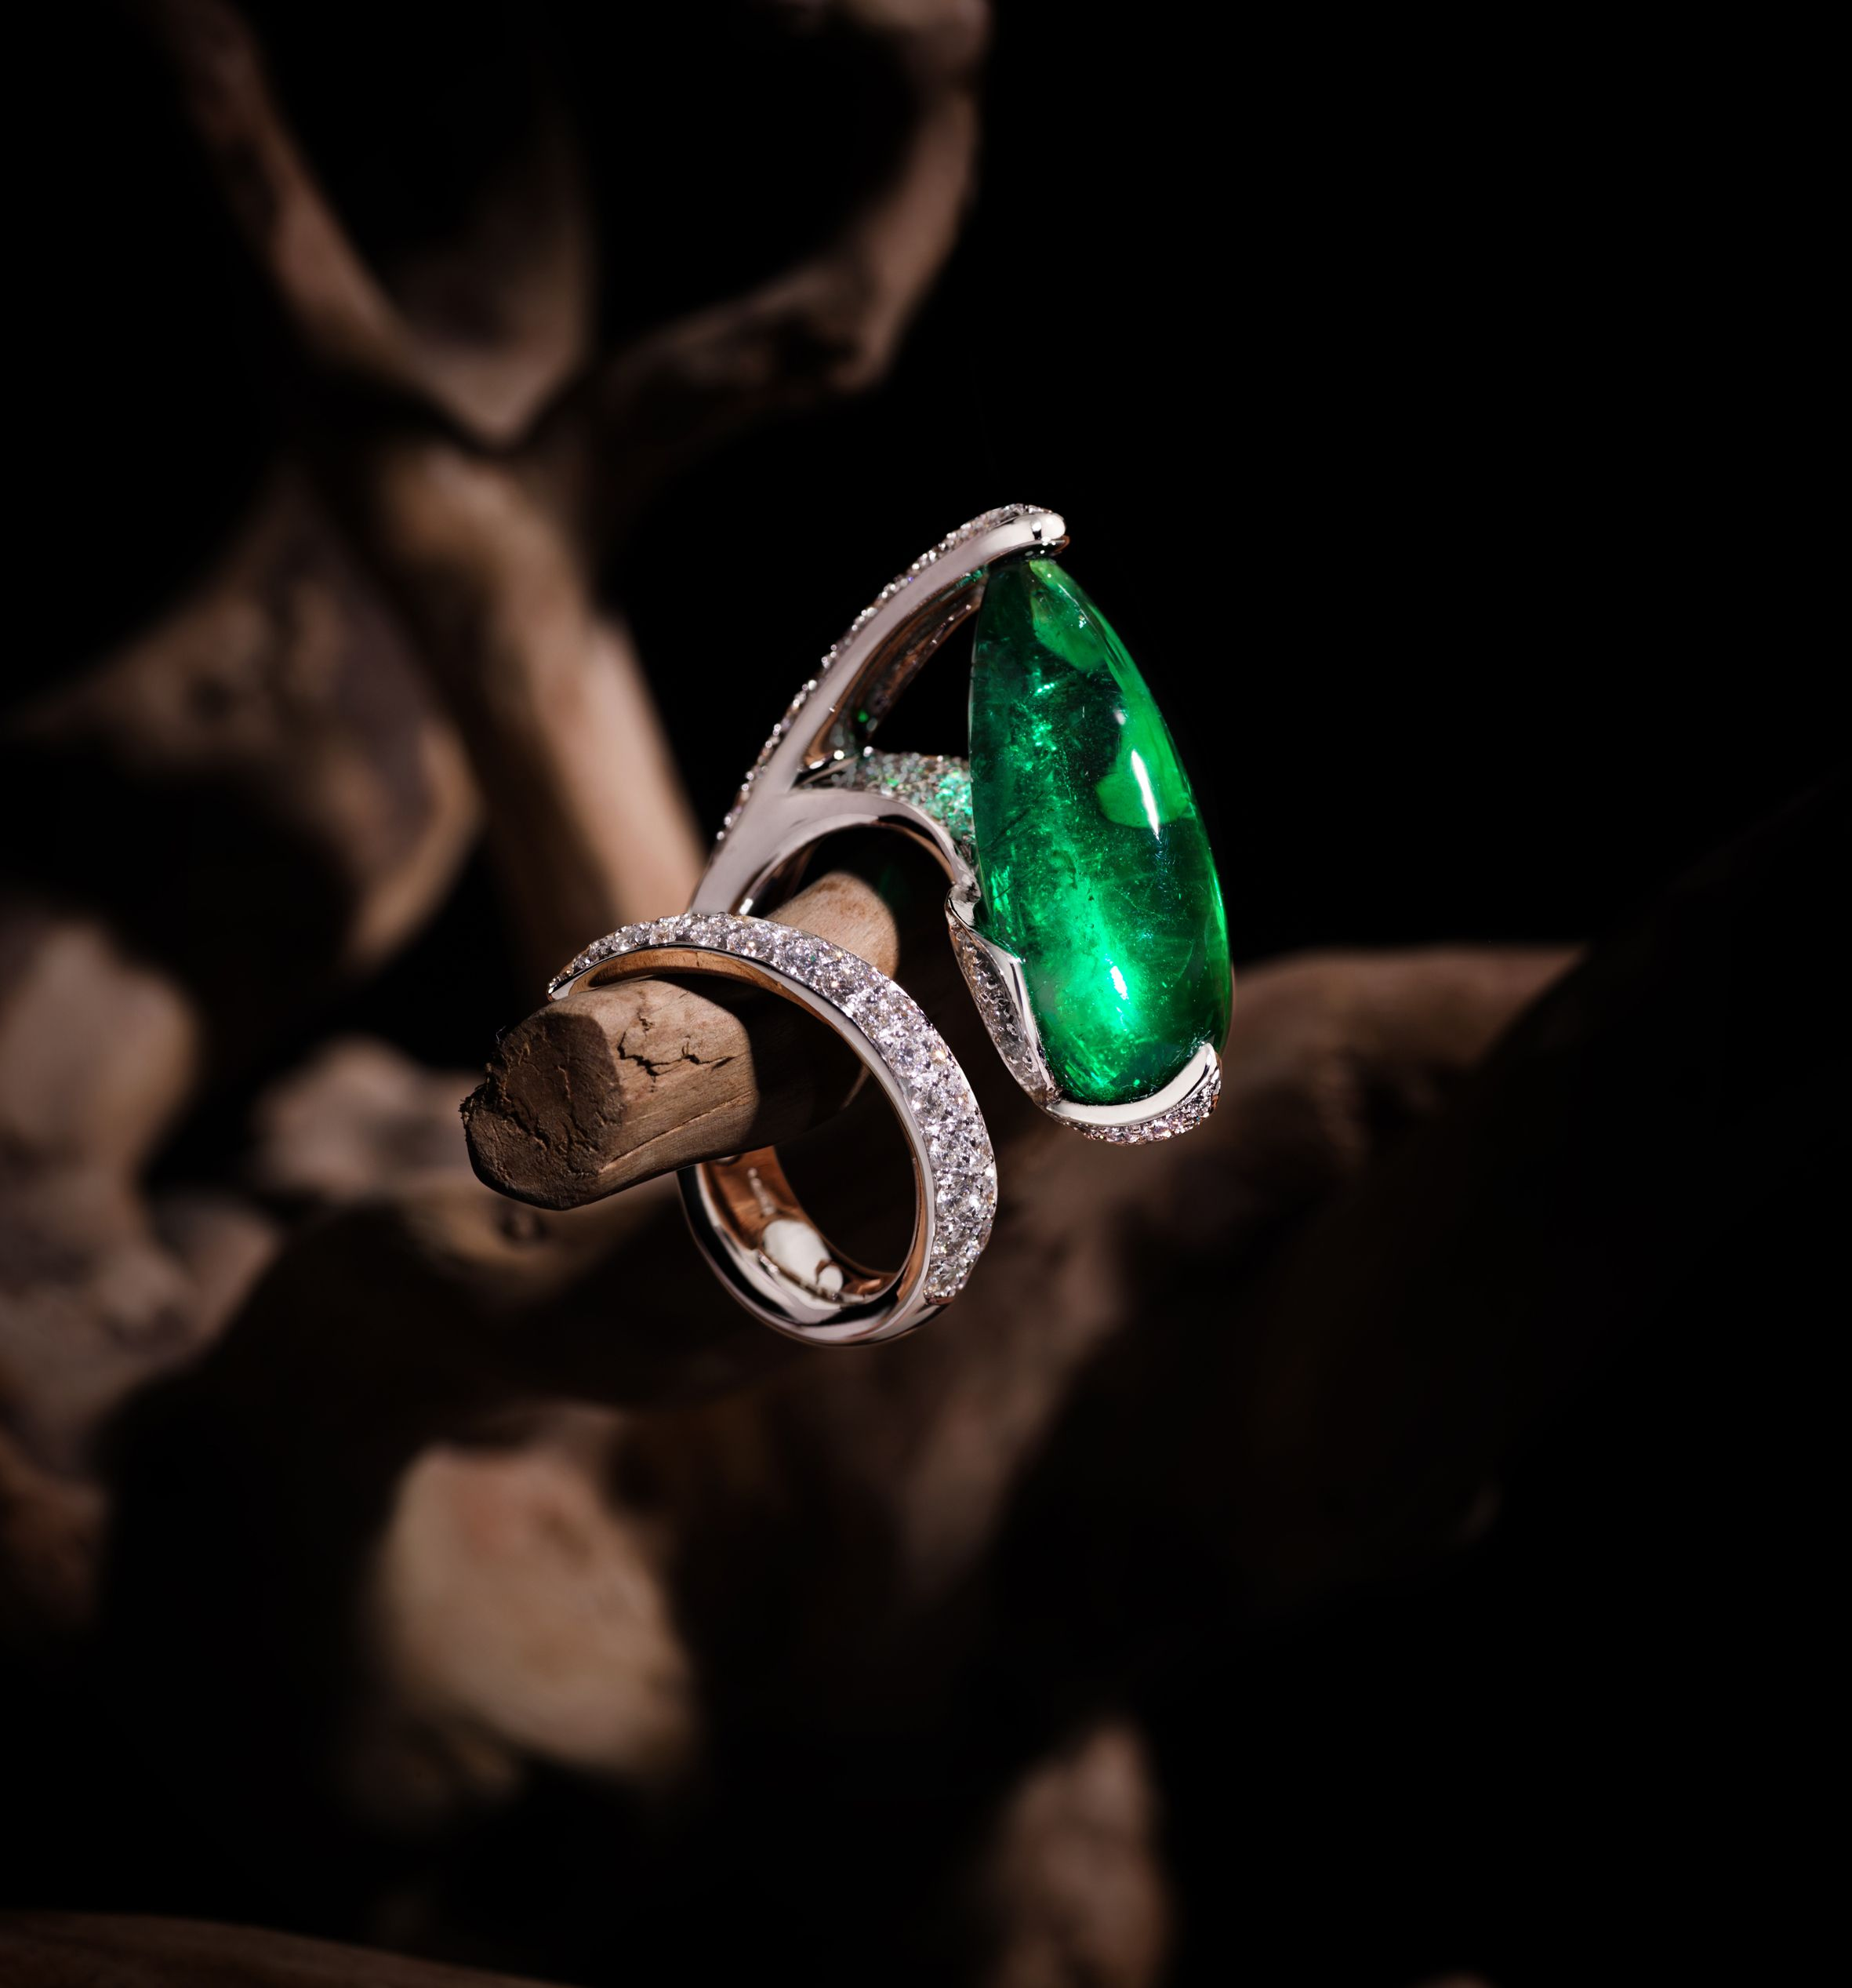 a ring shop sphene jewelry trillion journey dsc cut through art moldavite rings